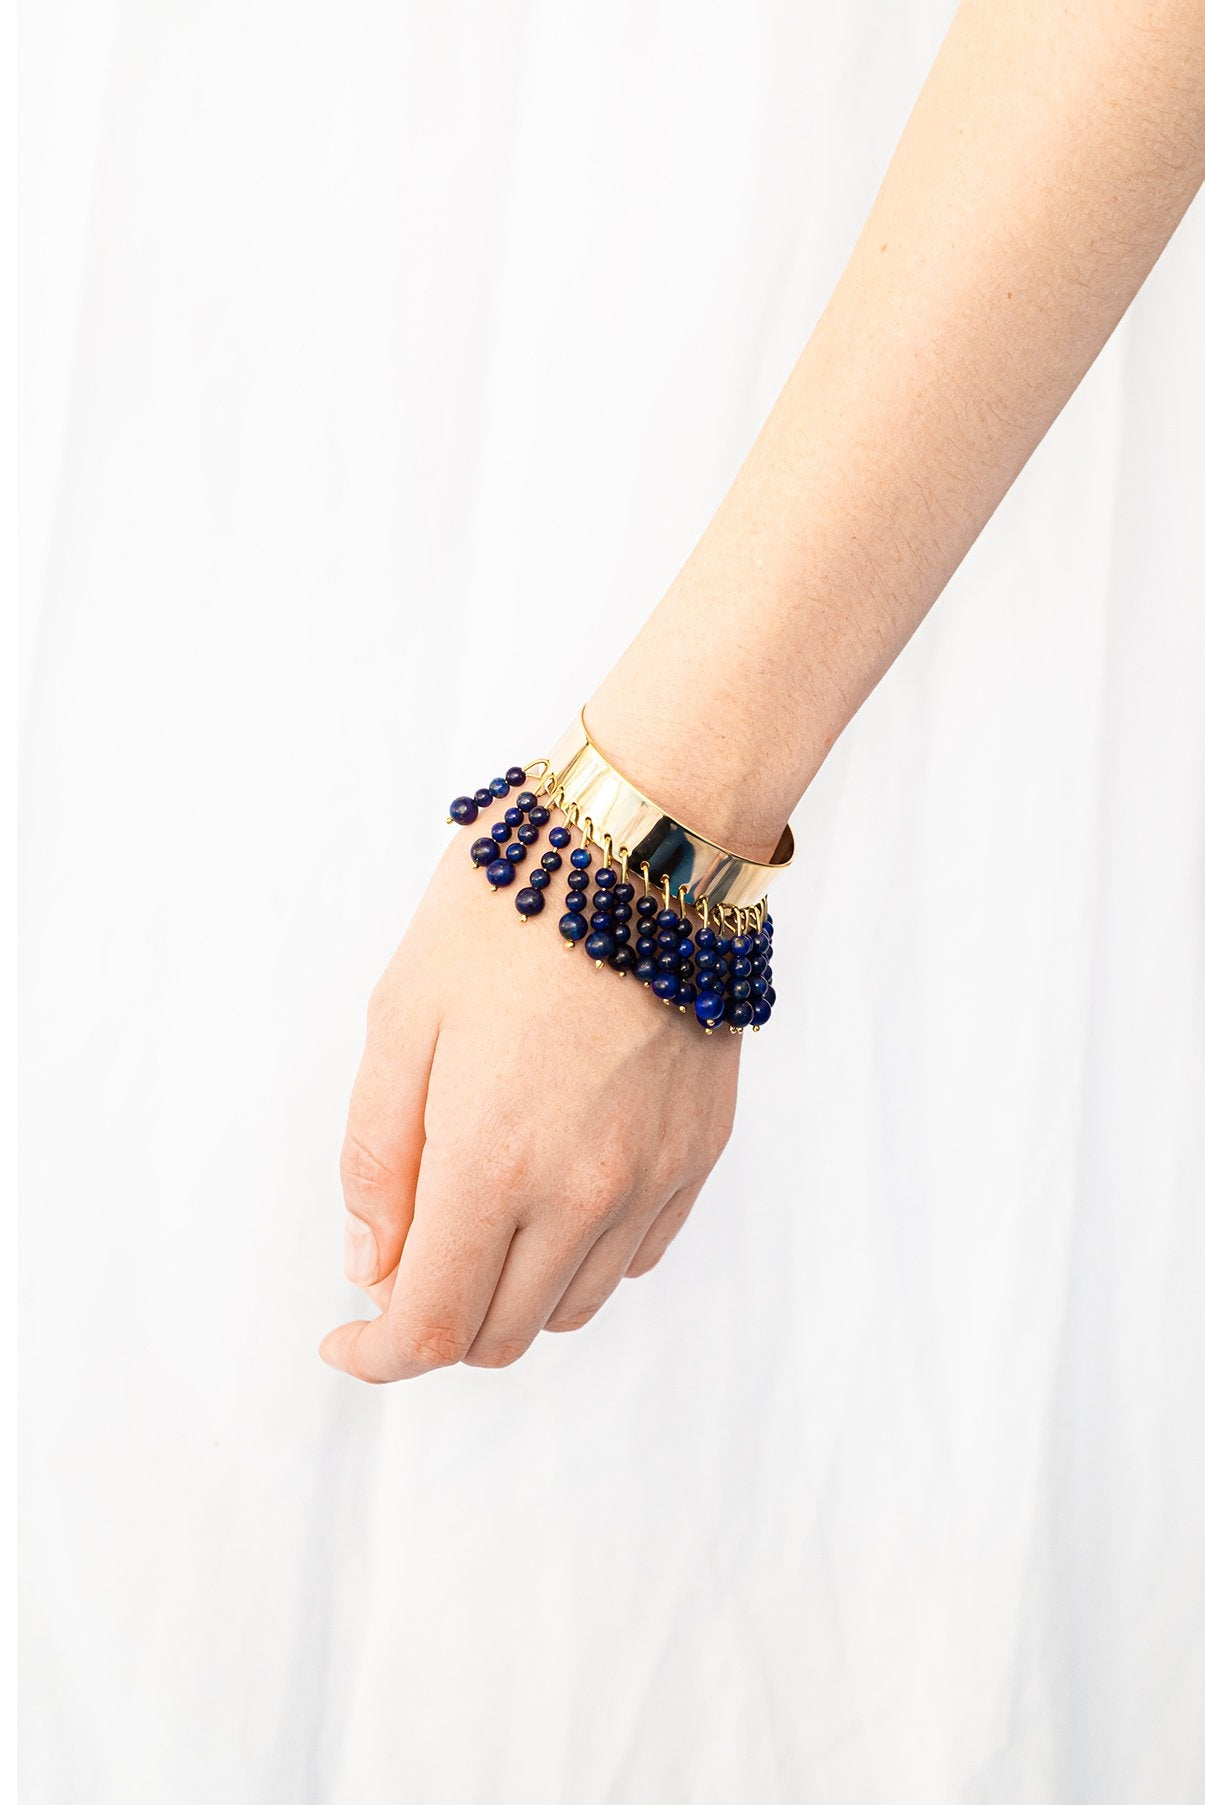 Ninety six beads cuff Bracelet from Little Wonder curated by pu·rist